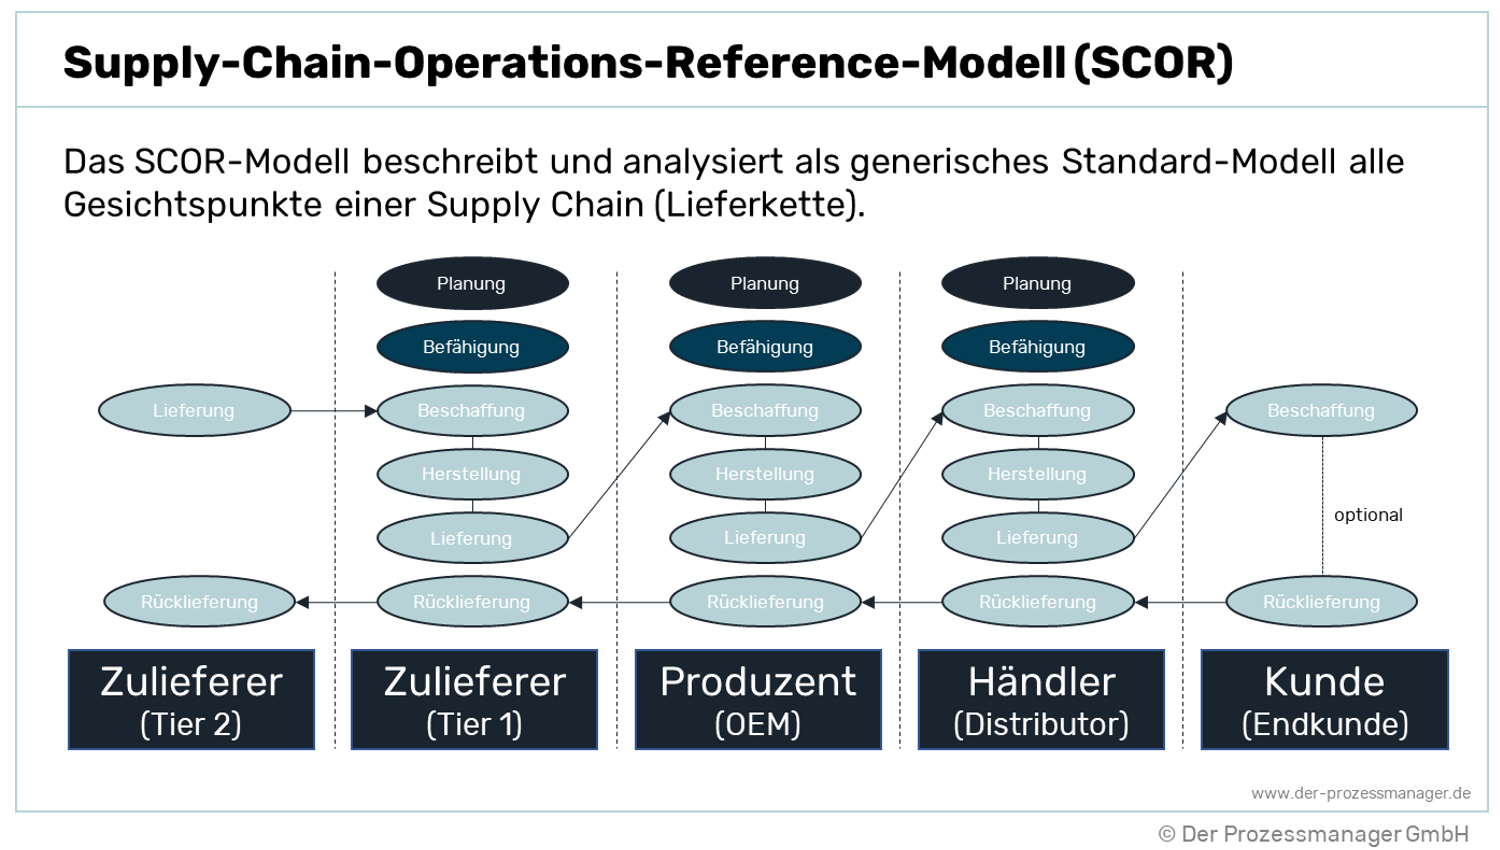 Supply Chain Operations Reference Modell (SCOR)